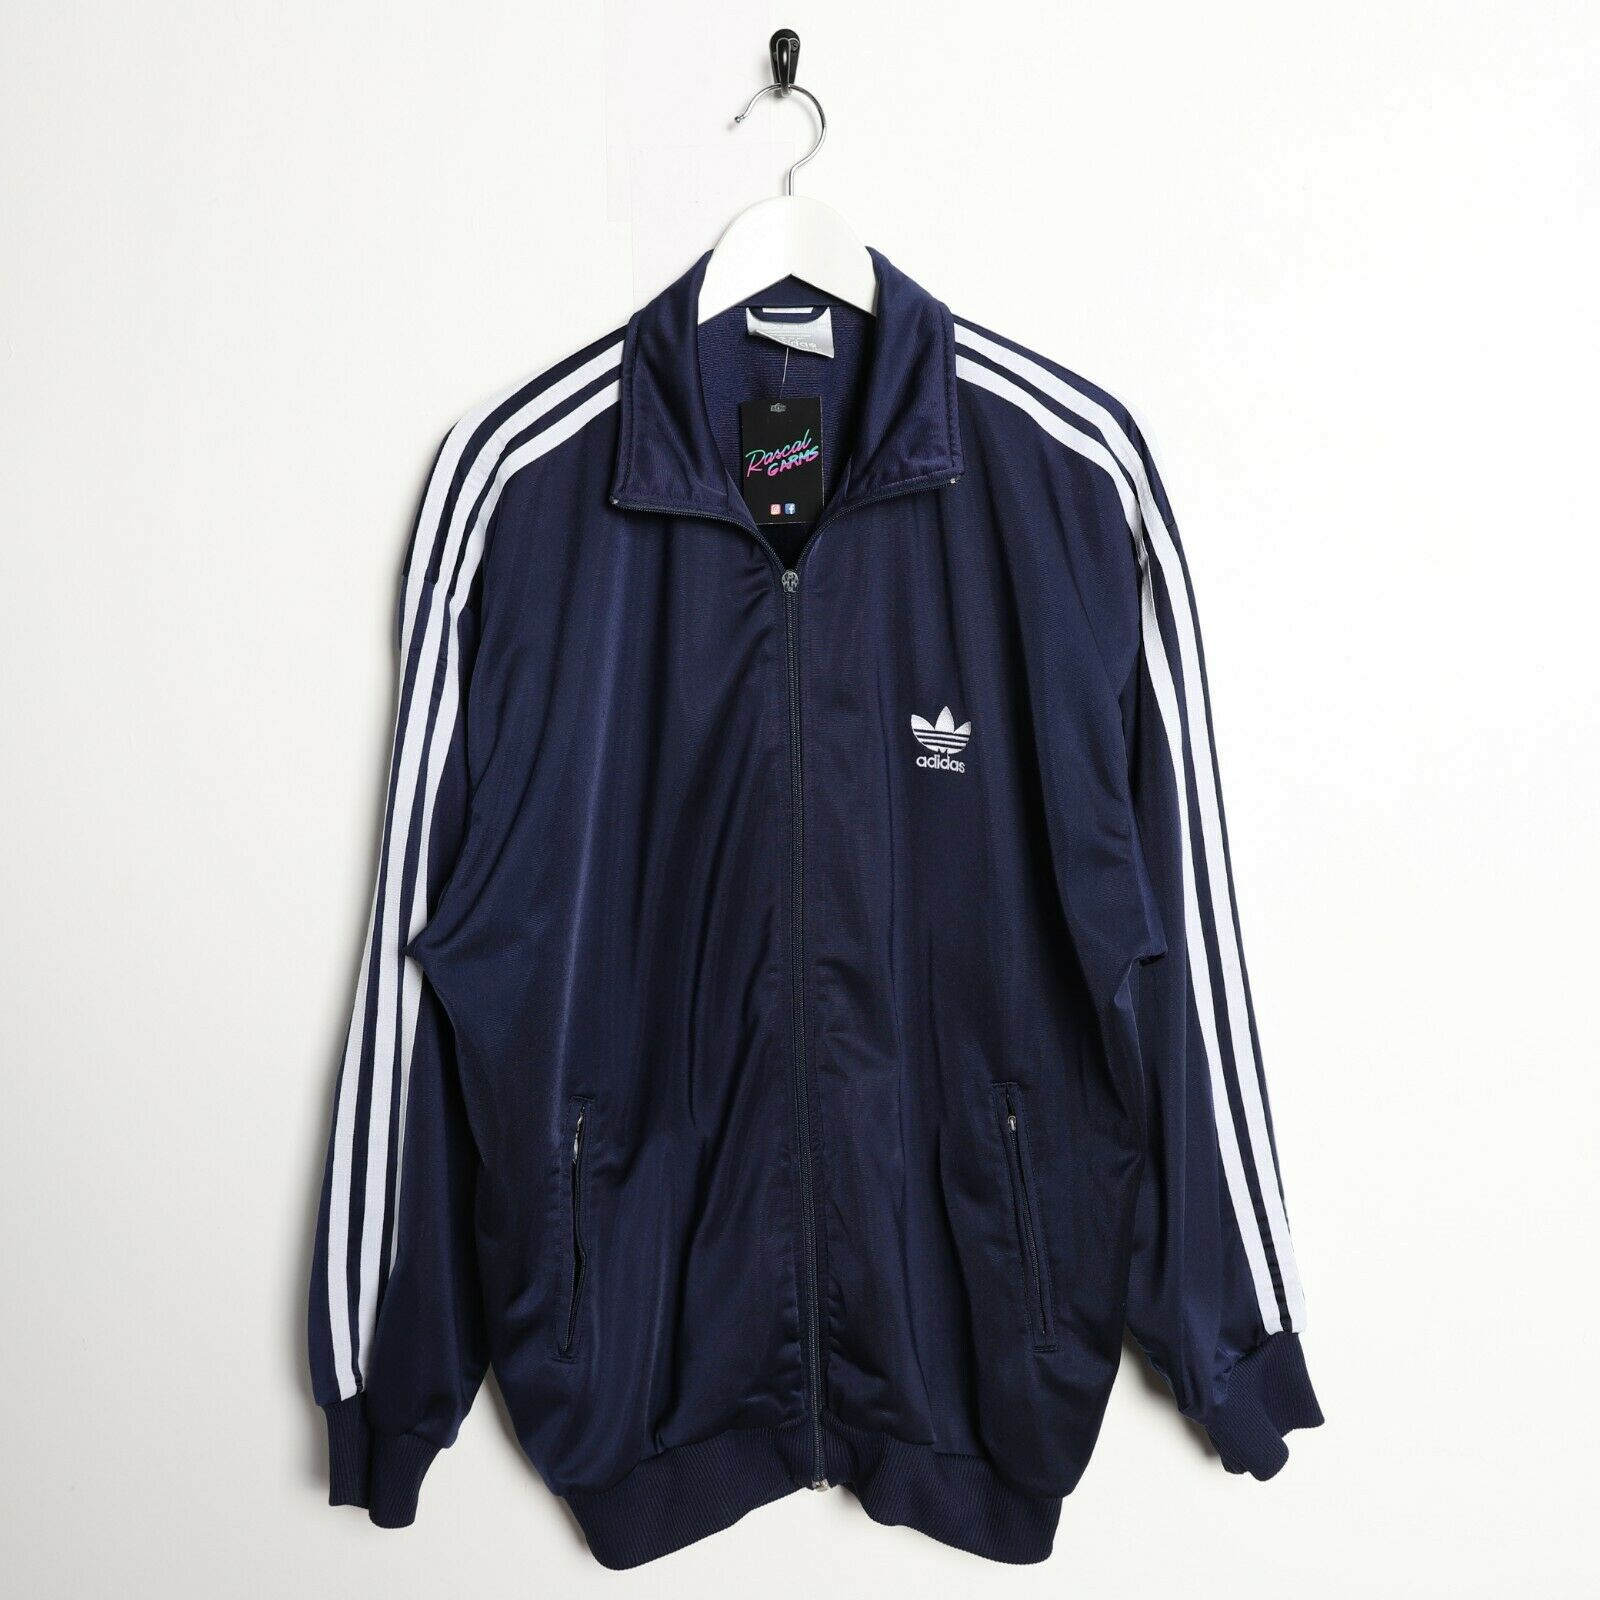 Vintage 80s ADIDAS Small Logo Tracksuit Top Jacket Navy Blue Large L